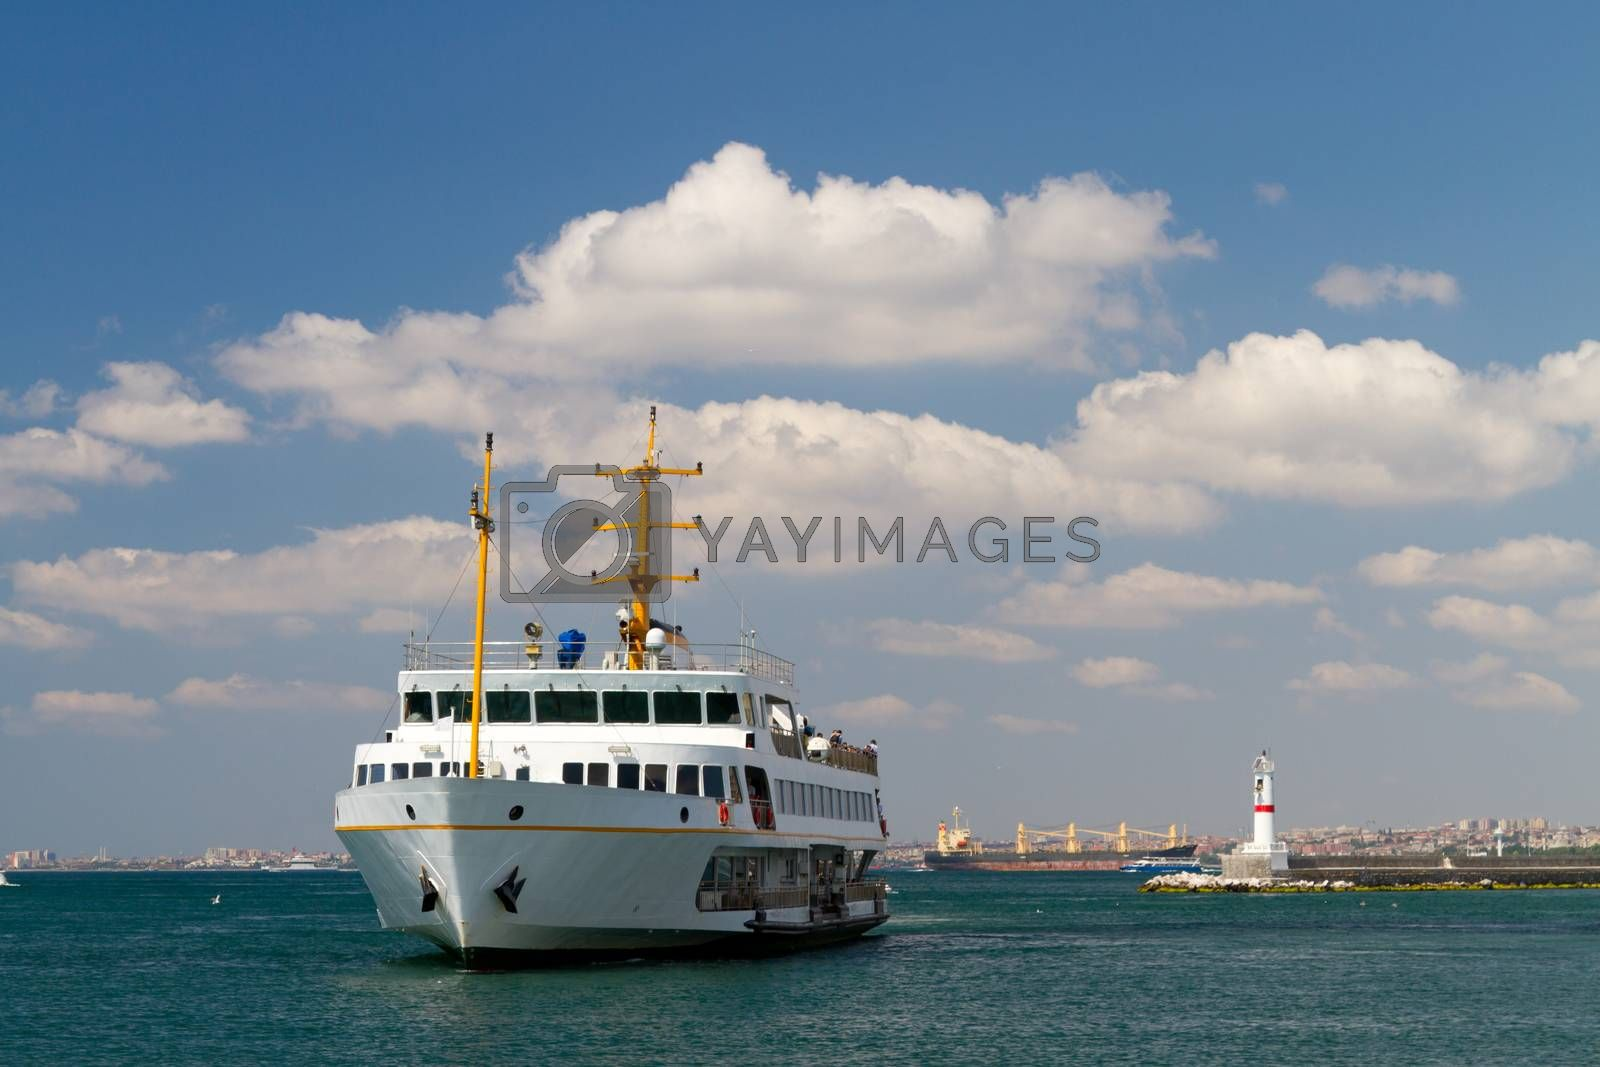 Royalty free image of A ferry from Bosphorus, Istanbul by EvrenKalinbacak